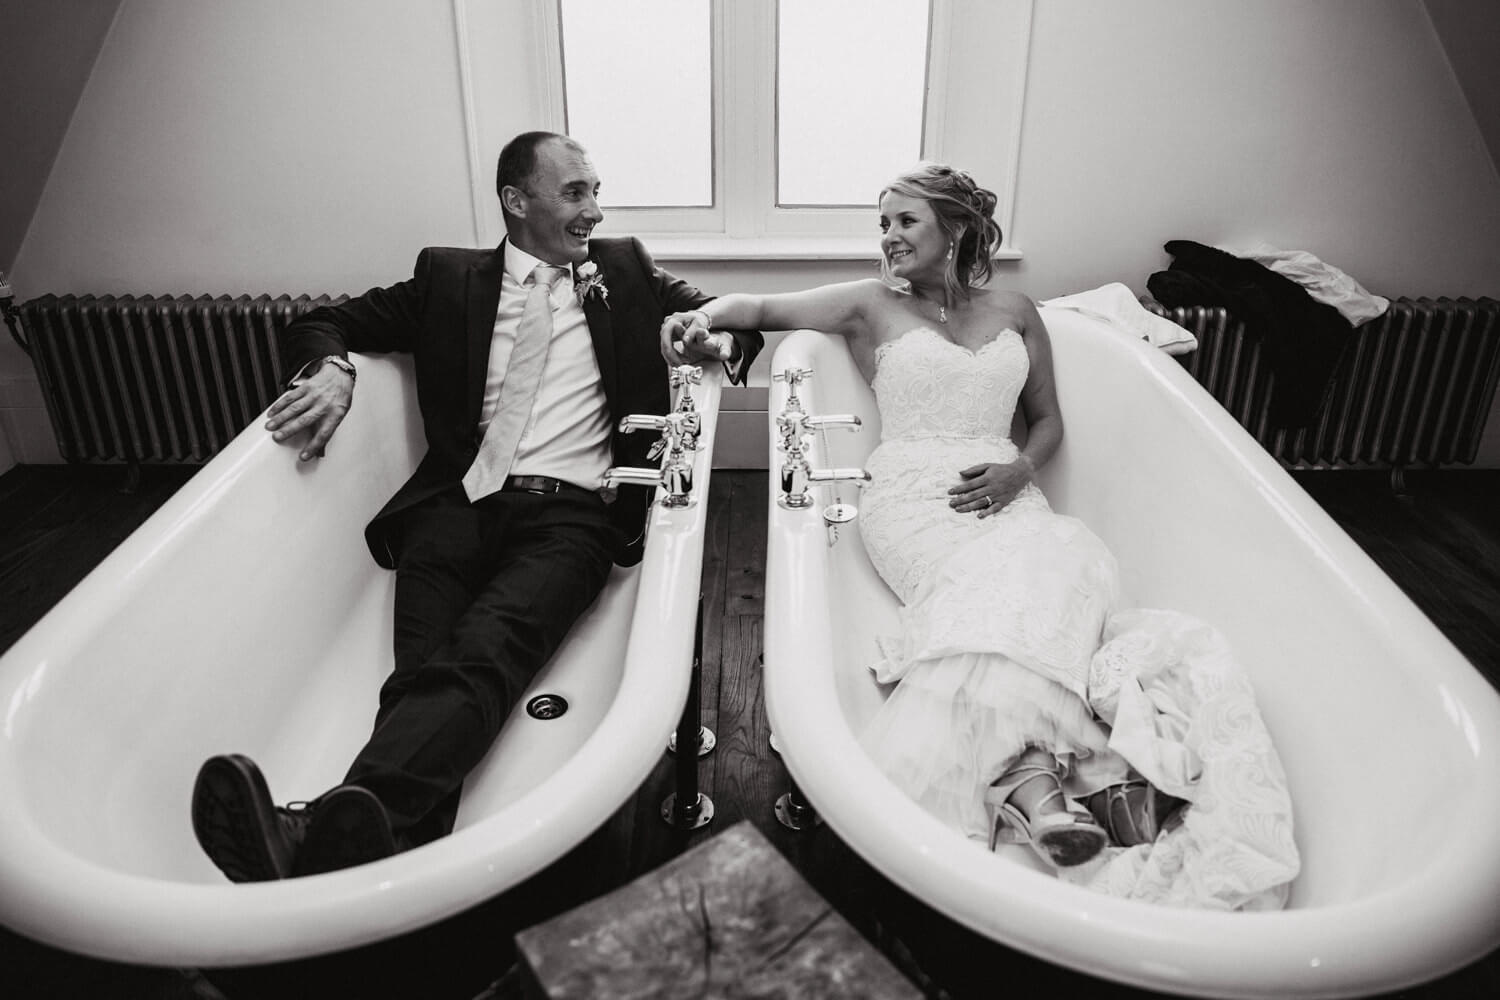 newlyweds pose for black and white photograph in bathtubs at didsbury house hotel